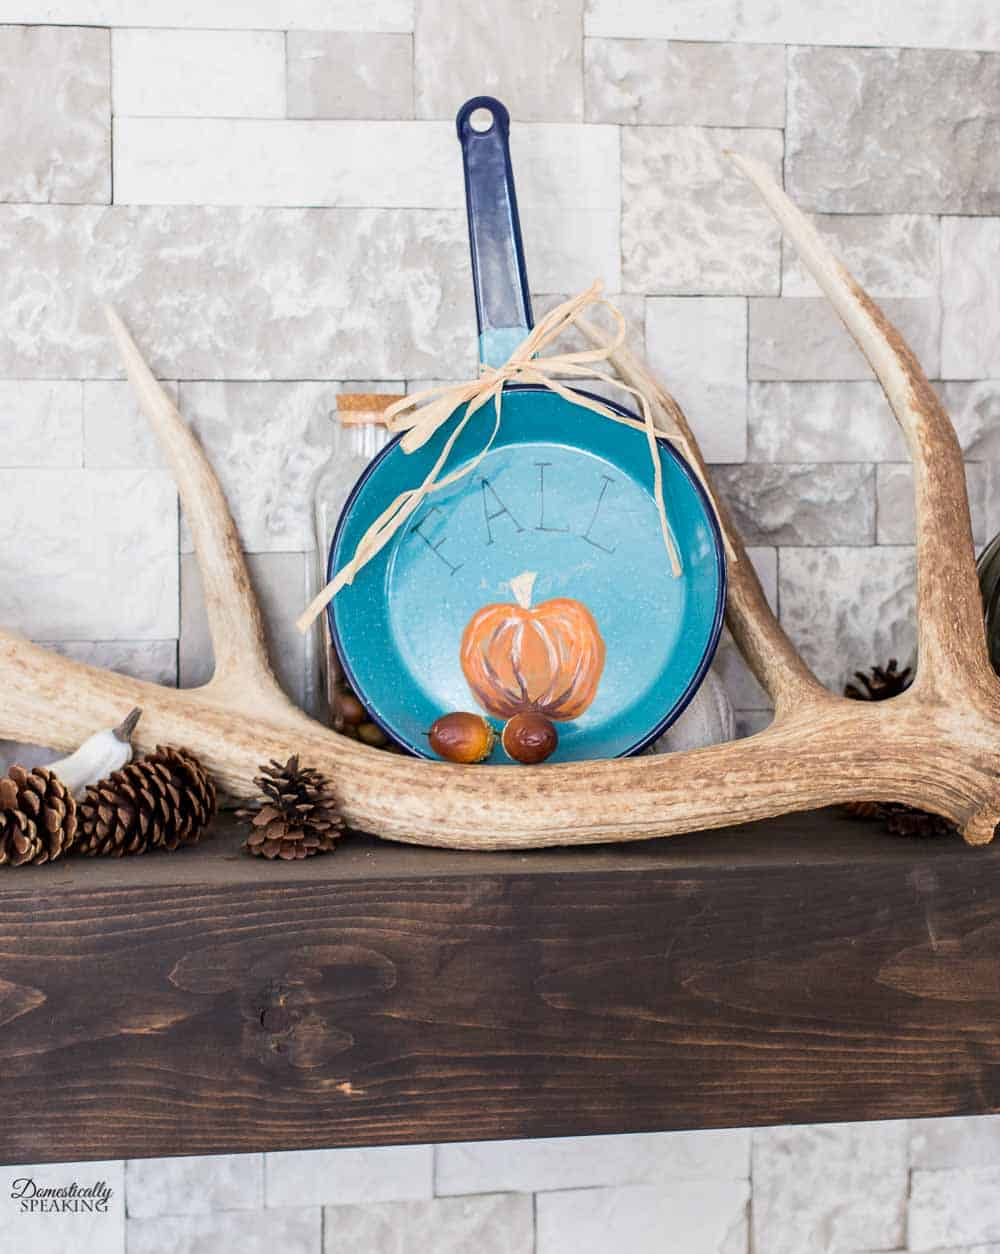 Painted Pumpkin on a Frying Pan